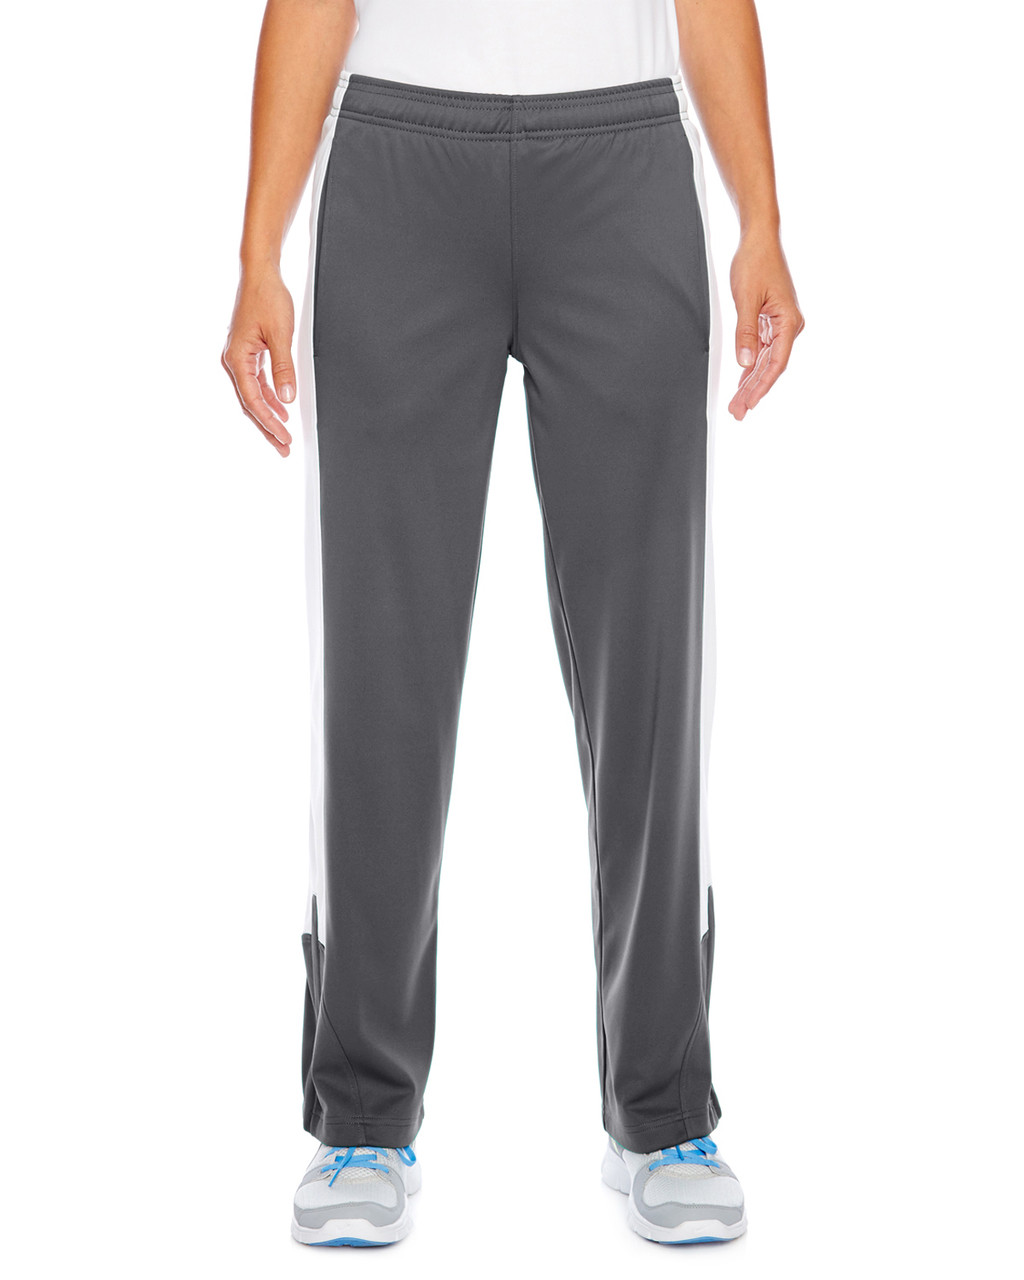 Graphite/White - TT44W Team 365 Ladies' Performance Fleece Pant | Blankclothing.ca